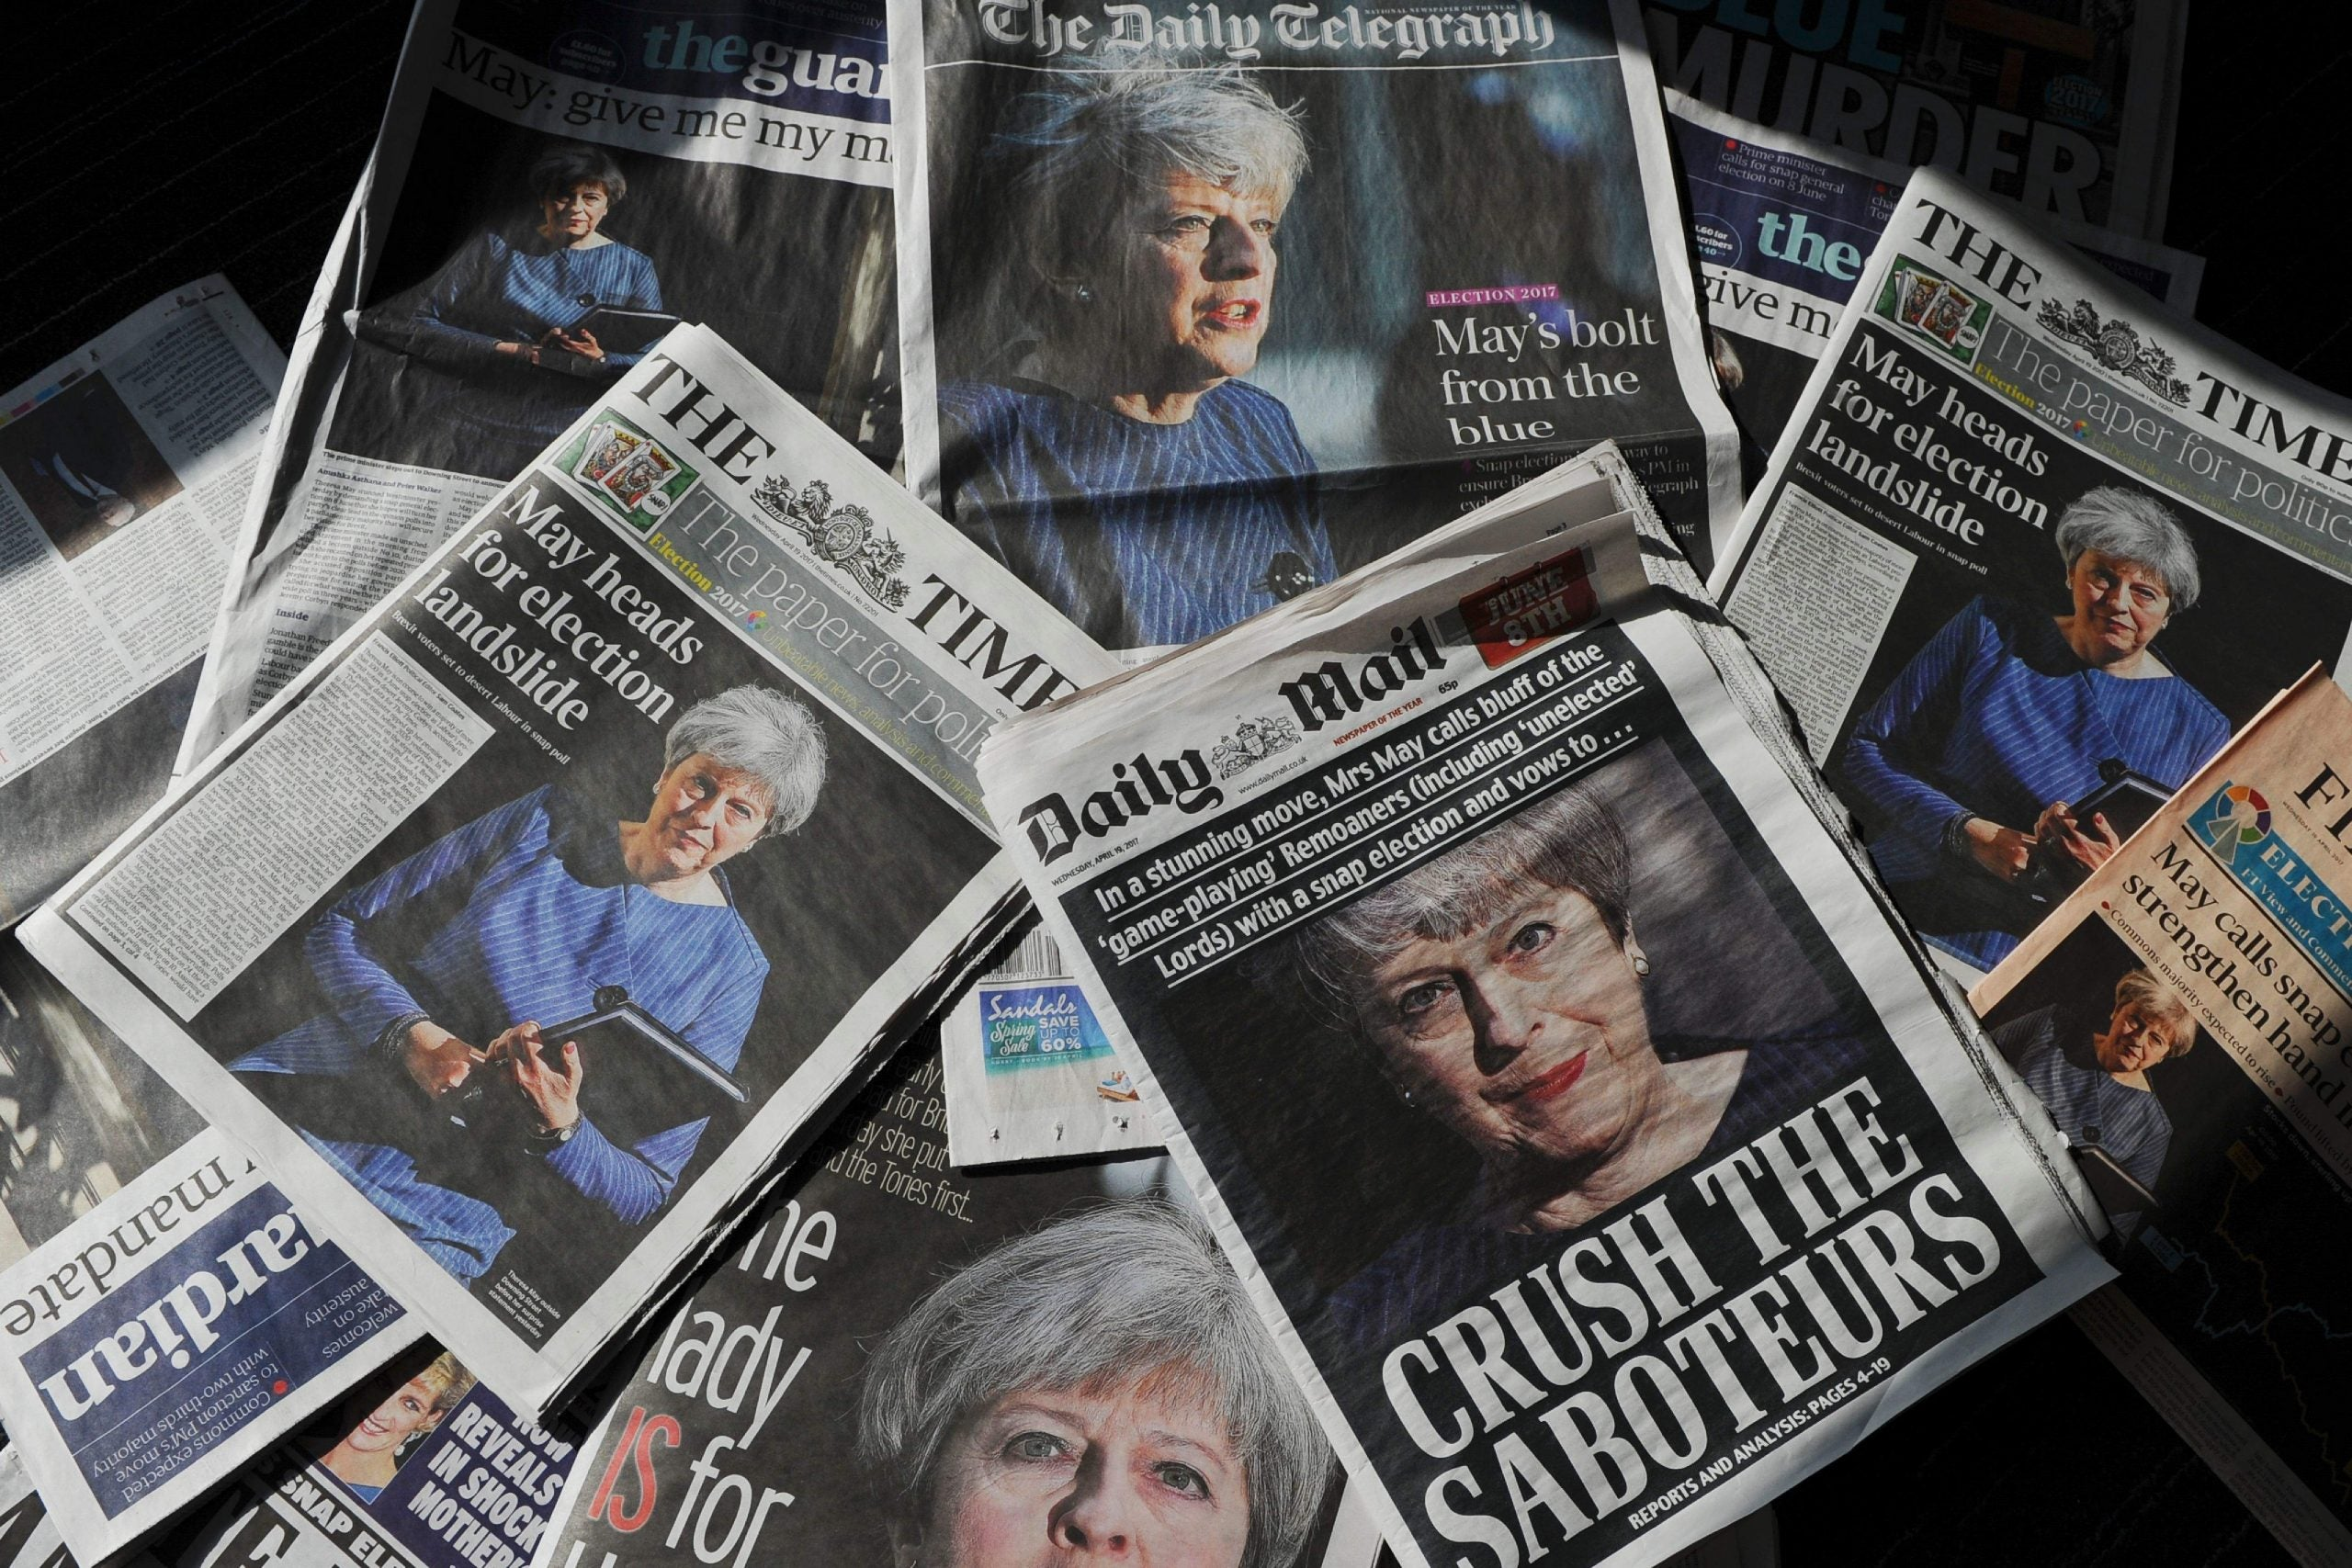 Hyper-partisan Corbynite websites show how the left can beat the tabloids online